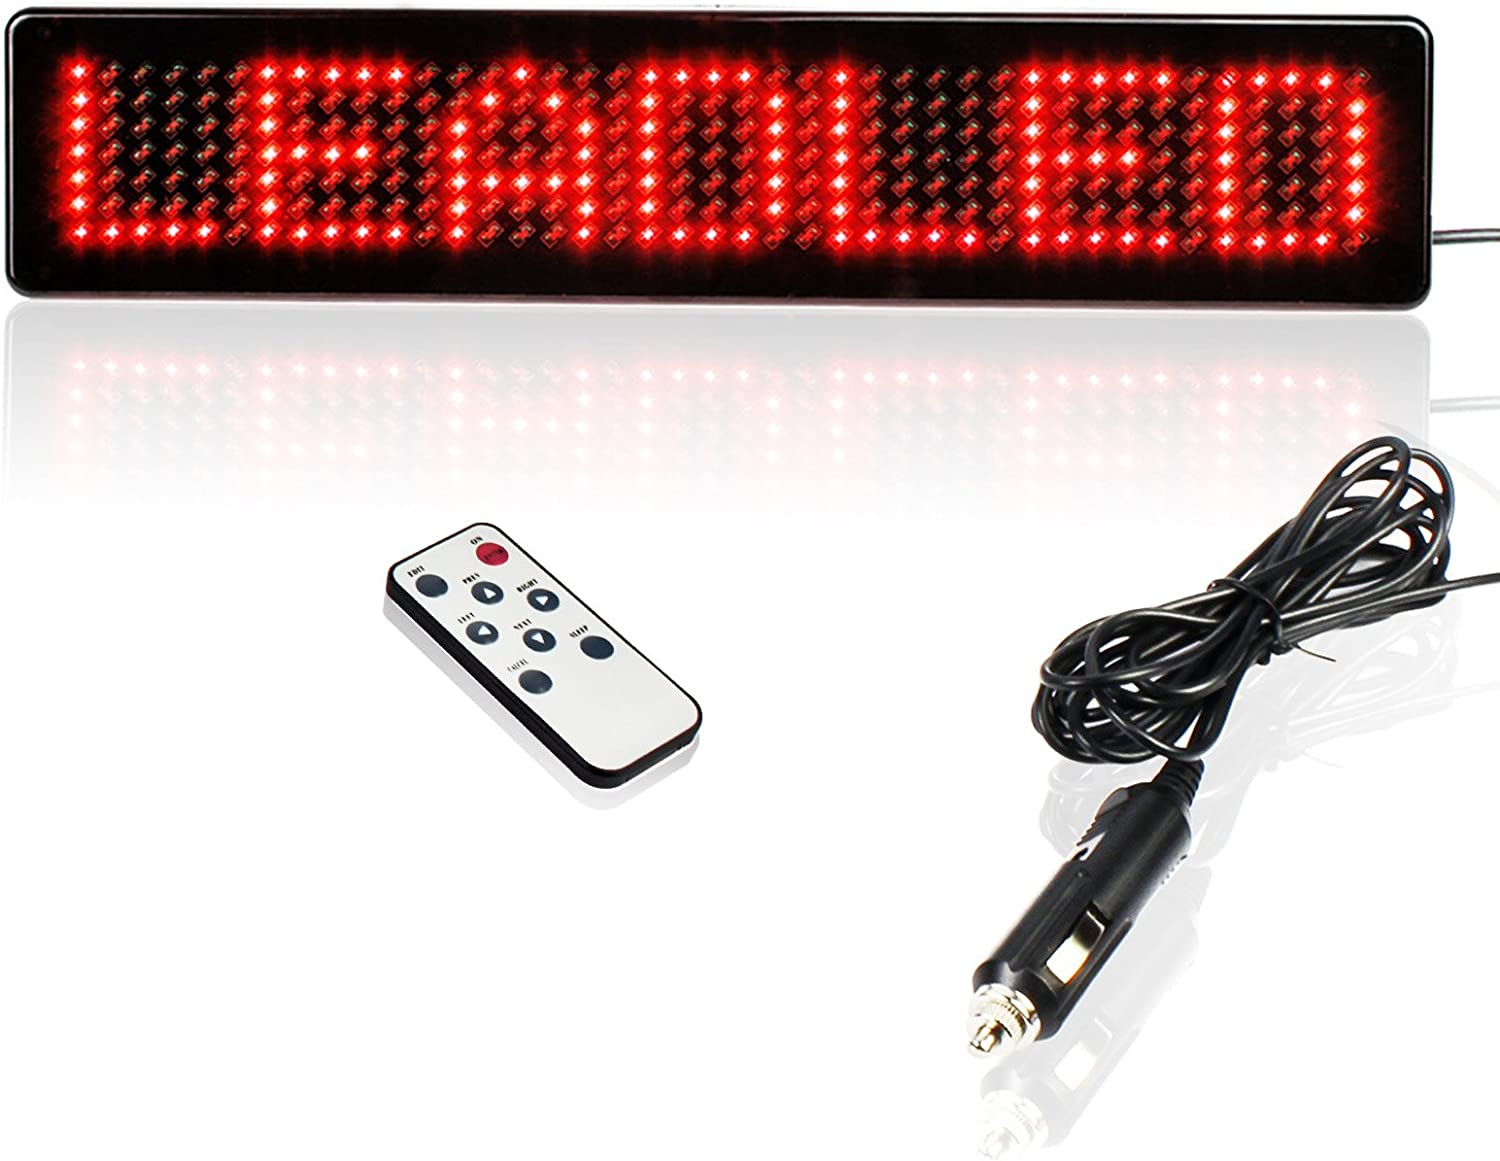 Leadleds 12V Led Car Sign Scrolling Message Display Board Remote Programmable for Car Windows, Shop, Store, Business (Red)